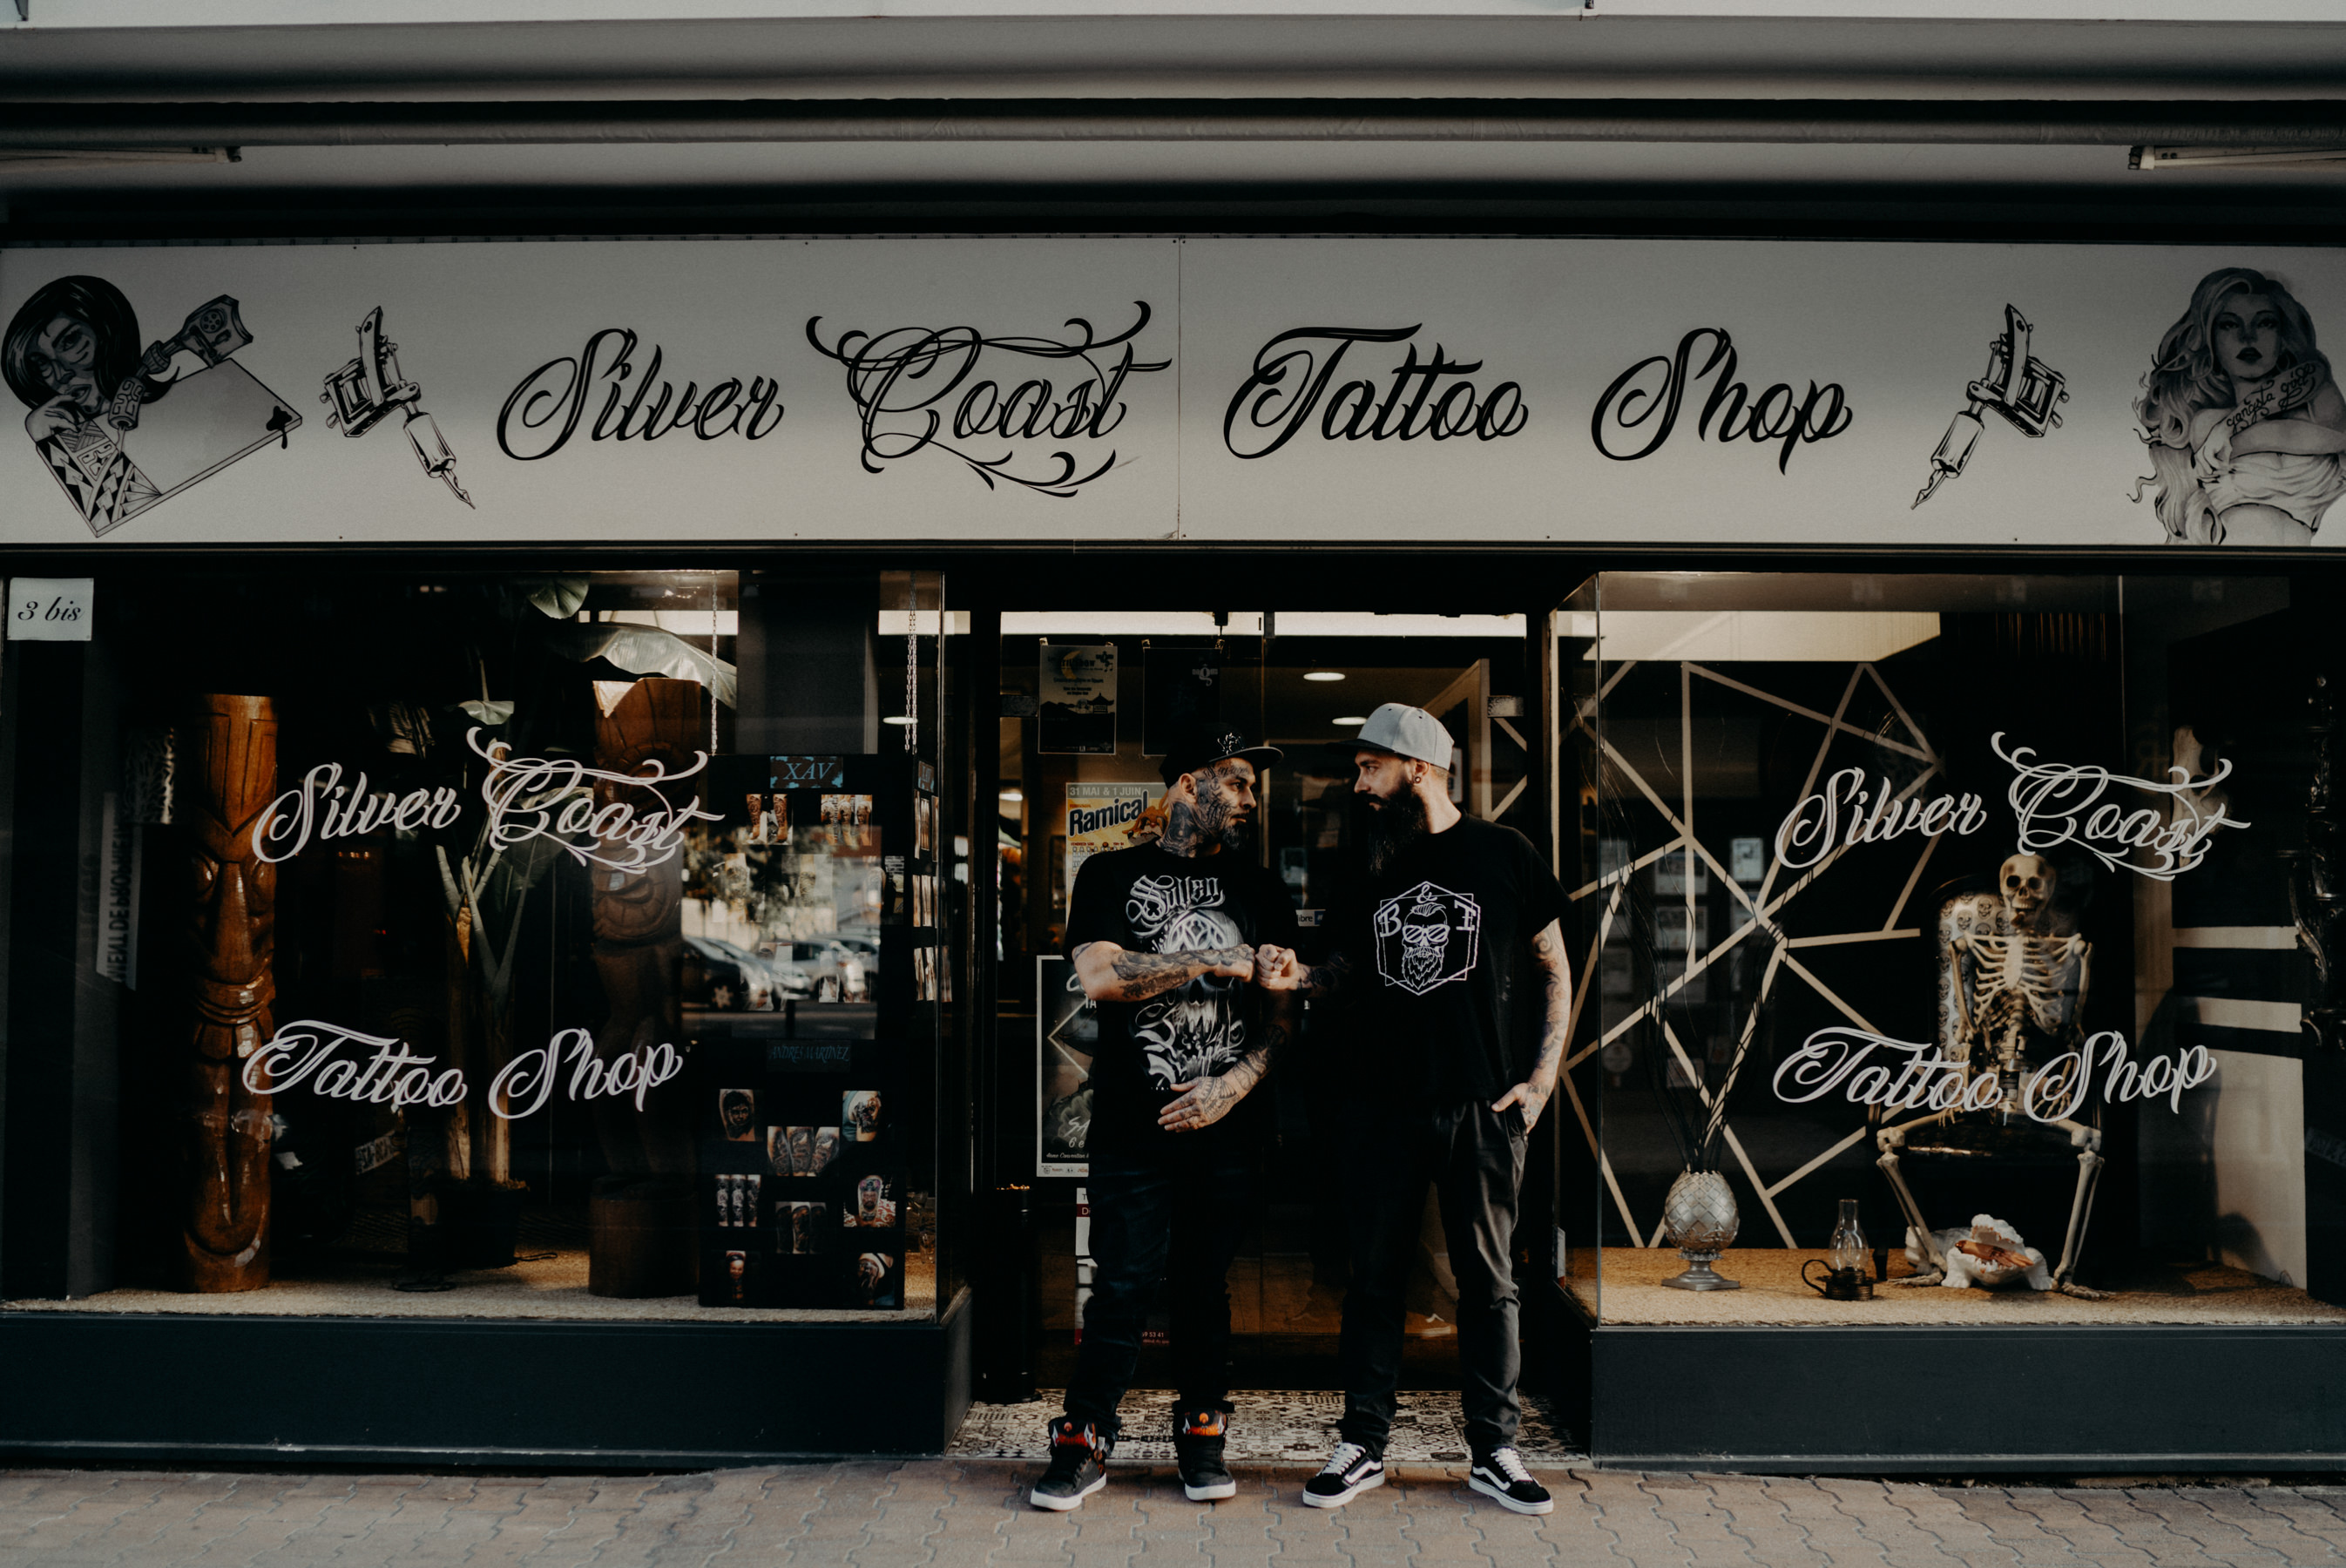 Silver Coast Tattoo Shop La Teste